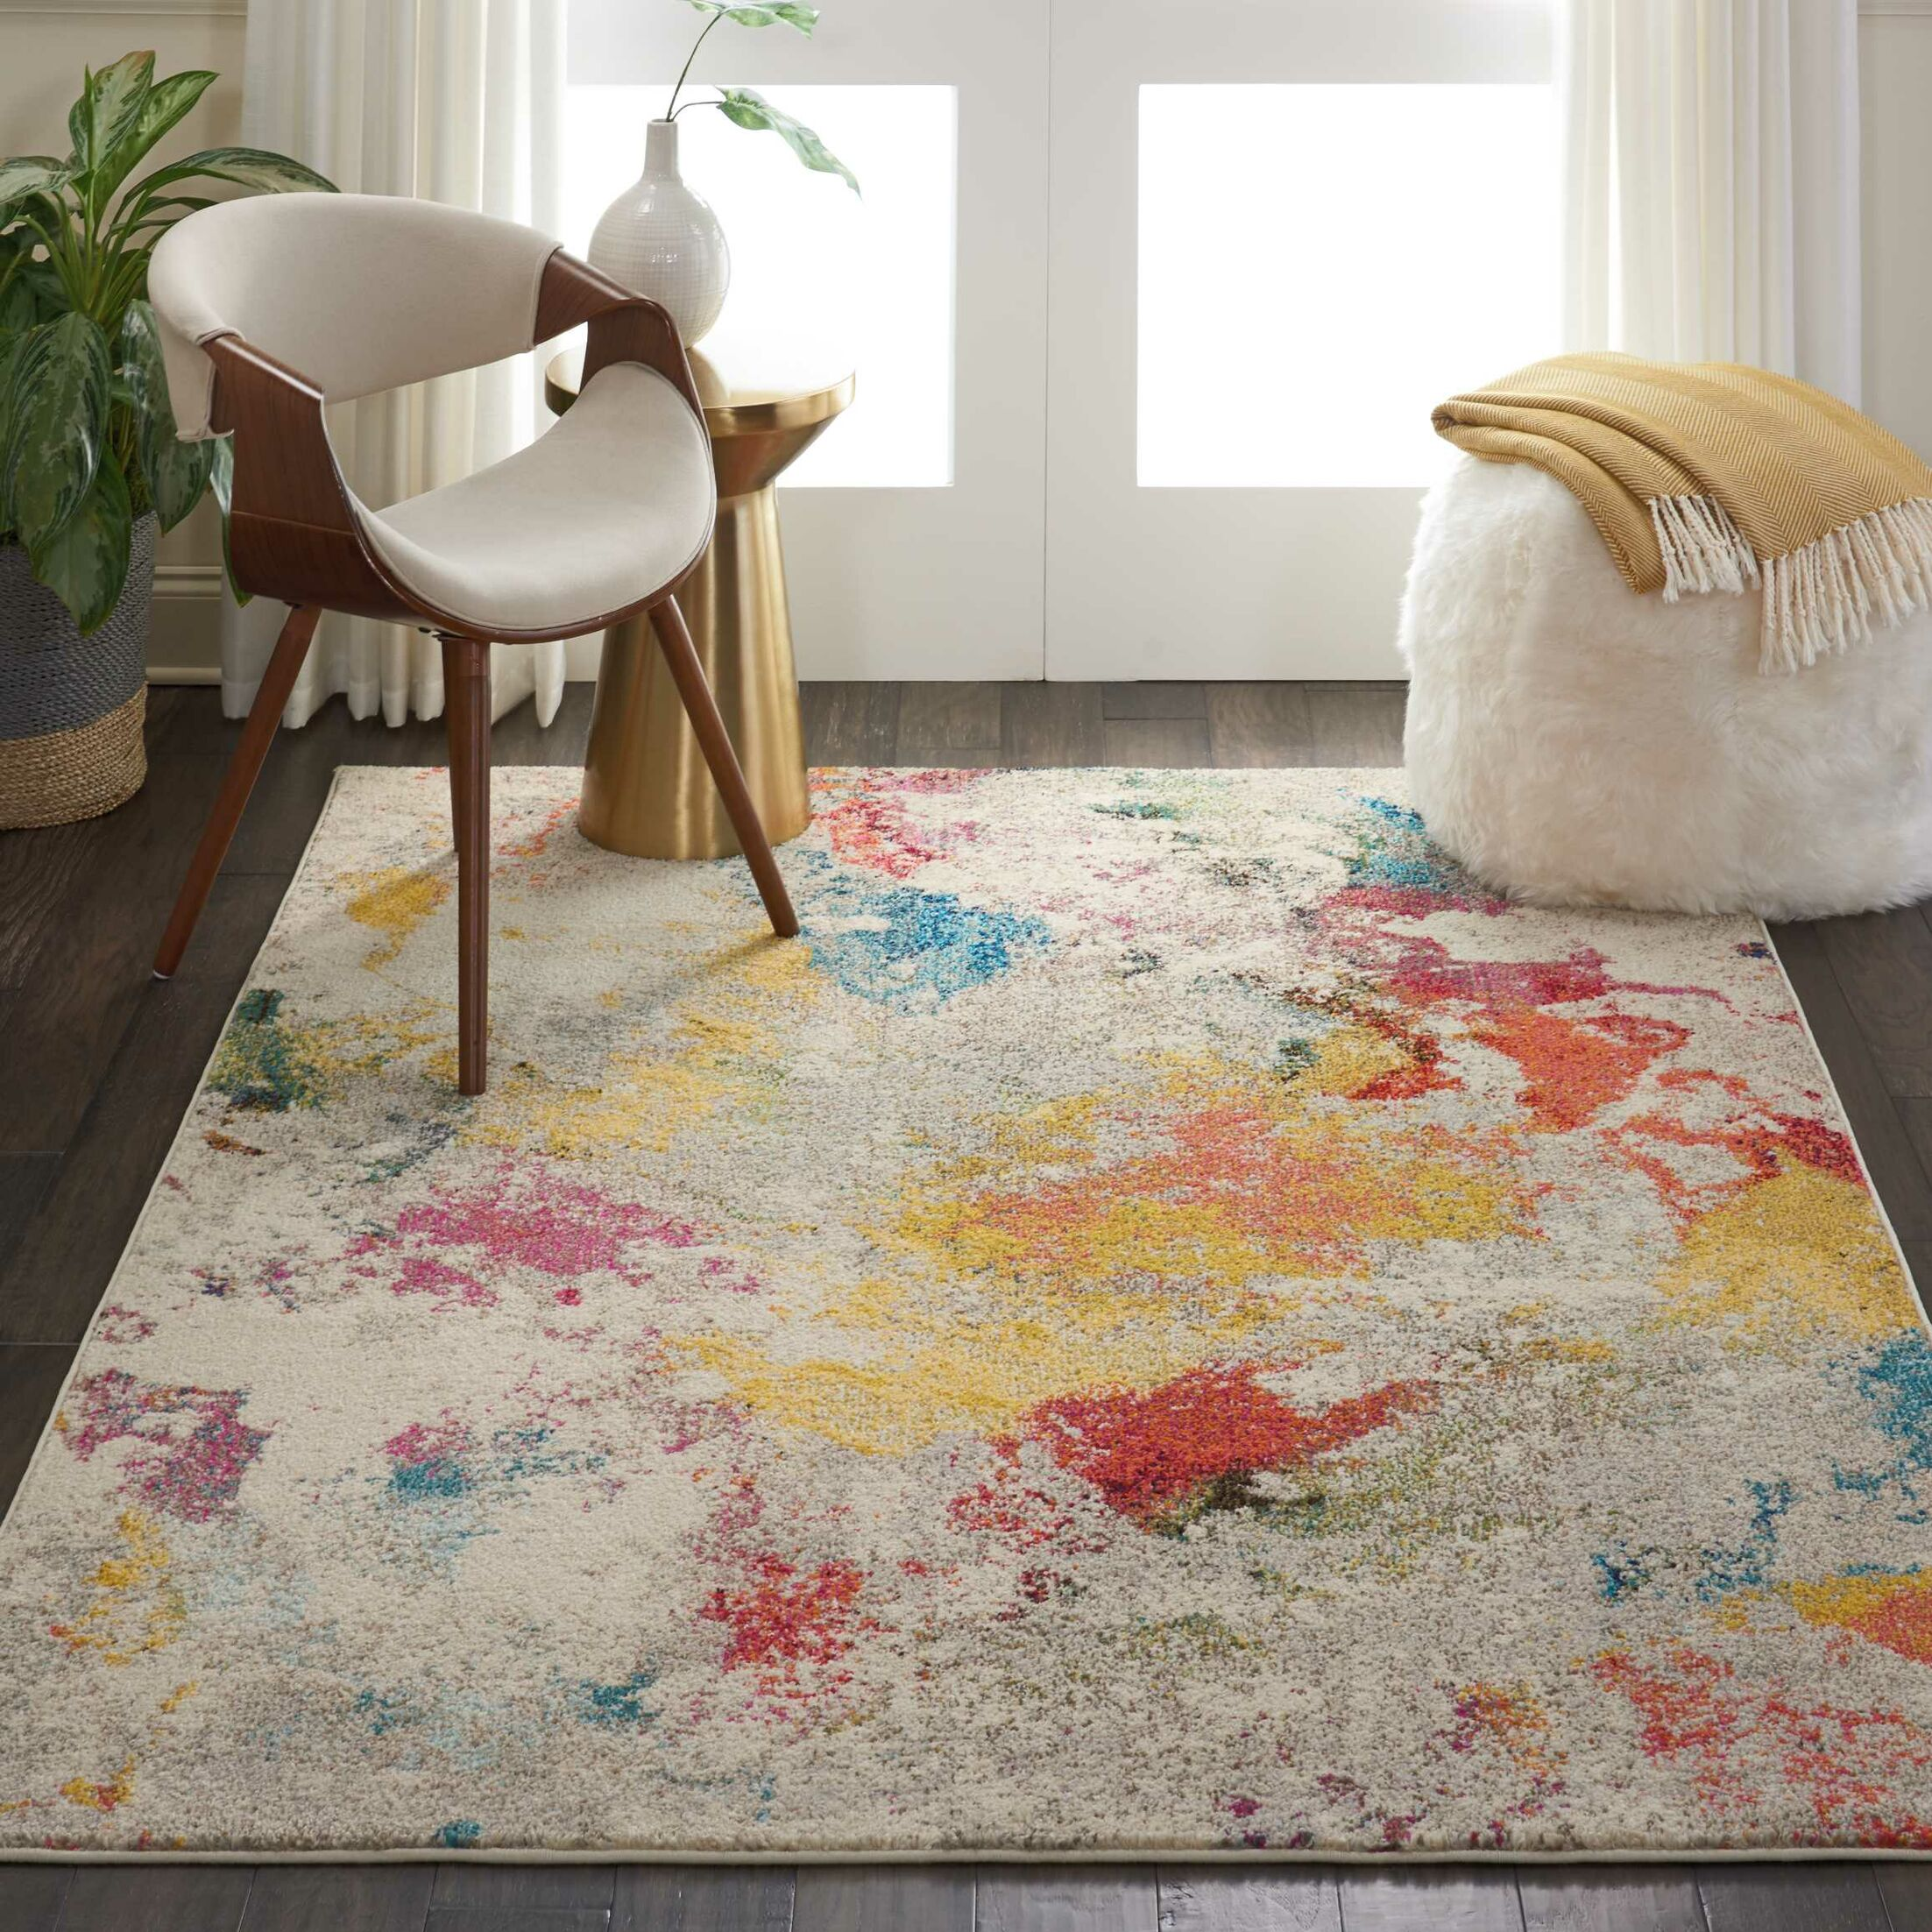 Allegro Bohemian Abstract Ivory/Yellow Area Rug Rug Size: Rectangle 3'11